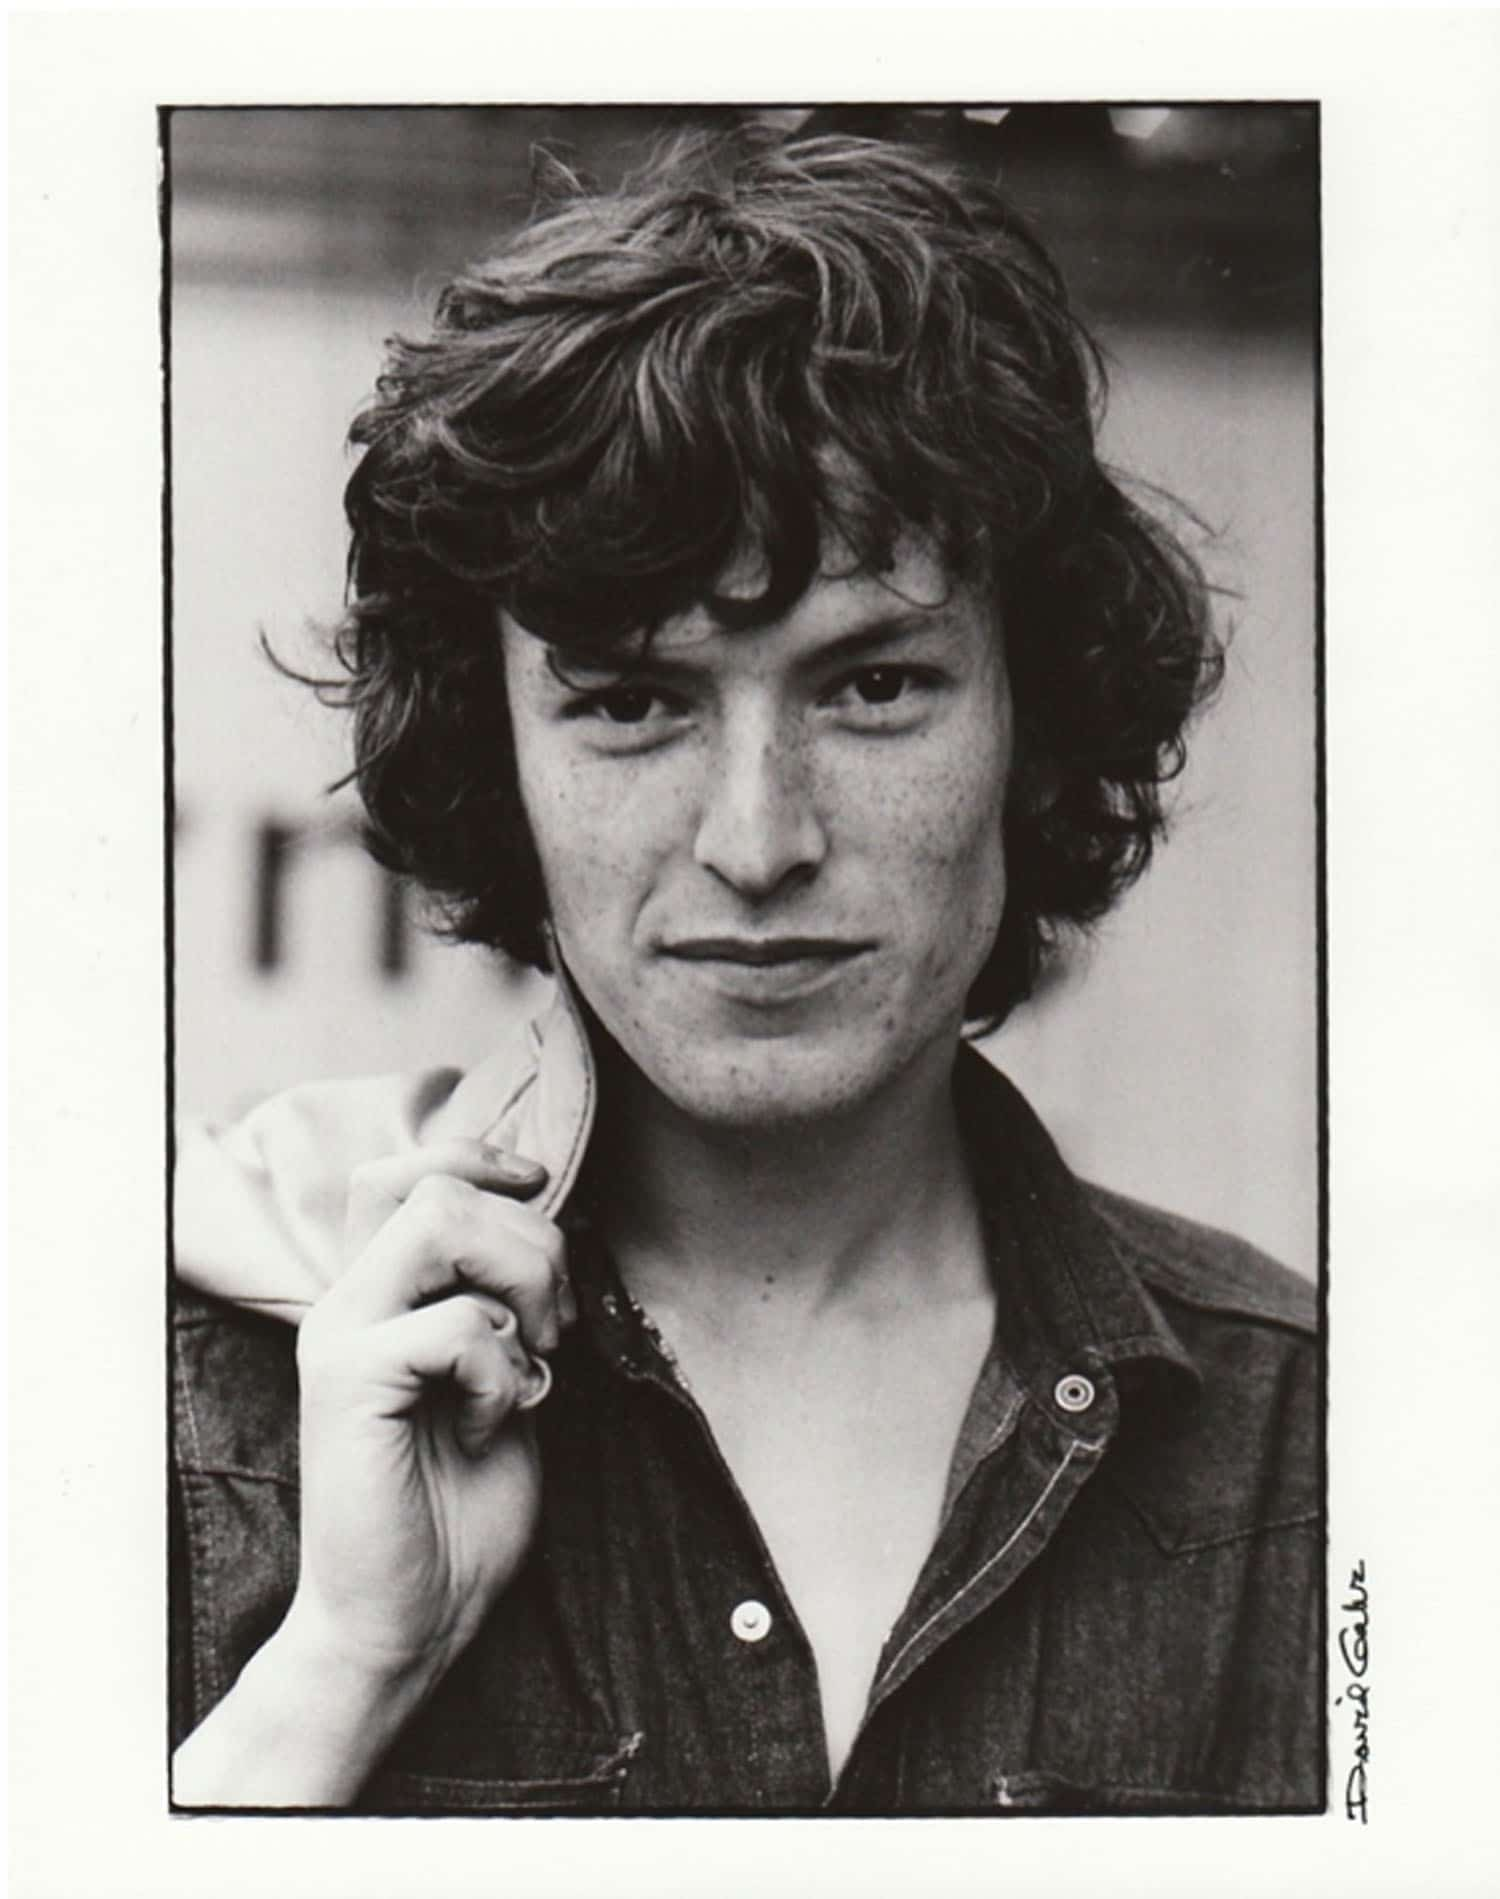 Steve Winwood Blind Faith Original David Gahr Photograph